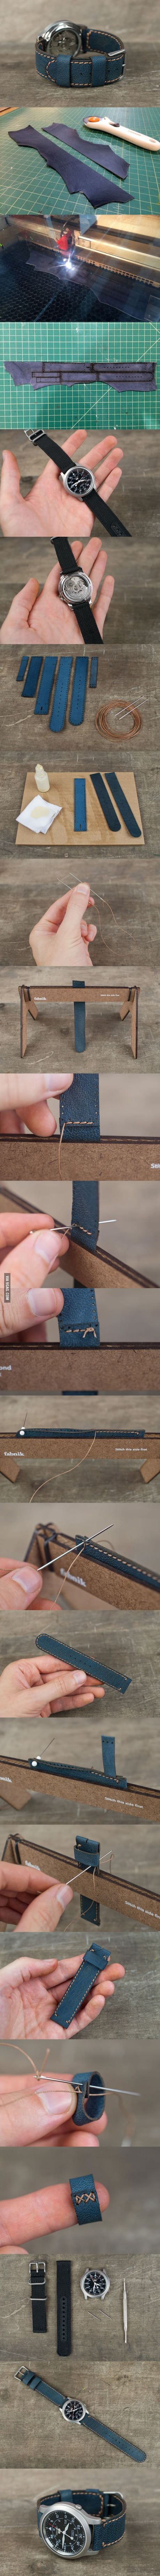 DIY watch strap - hand stitched and laser cut!